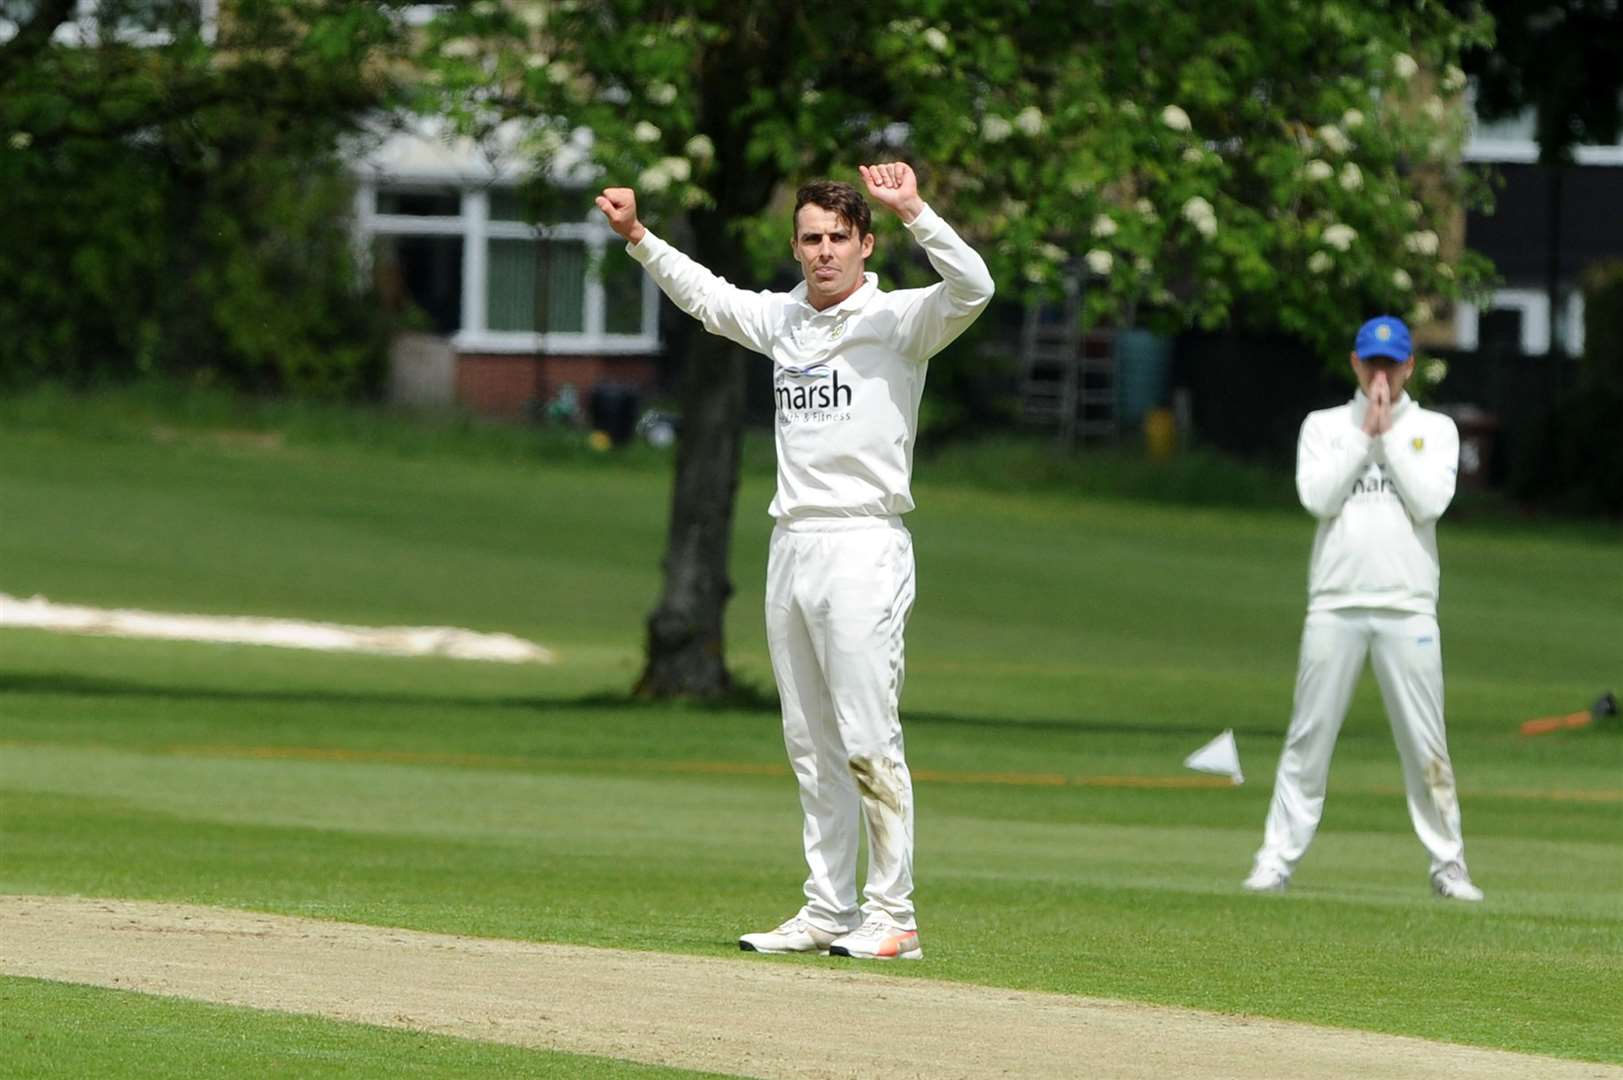 Peter Younghusband put in the star performance for Cambridge. Picture: Mecha Morton